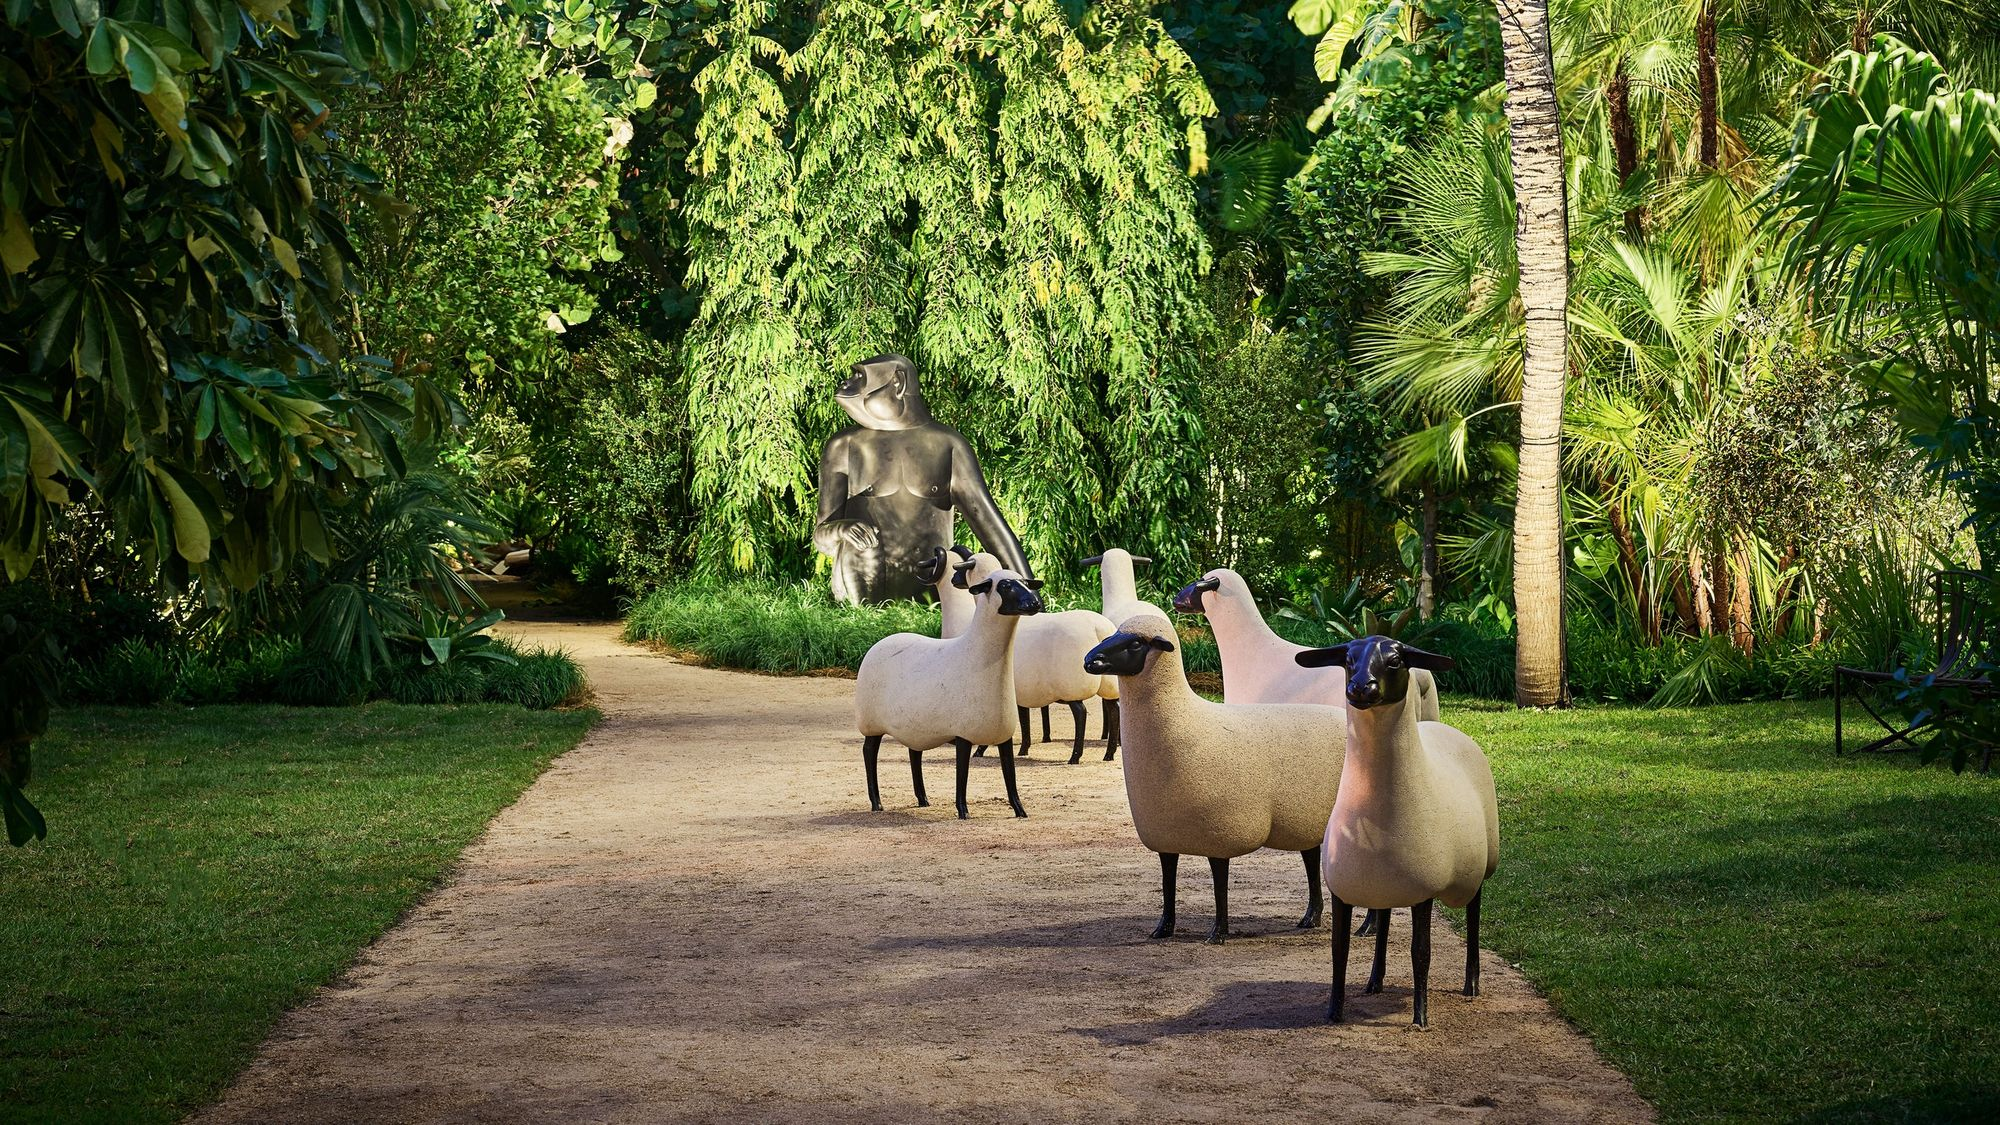 Project Image for Les Lalanne at The Raleigh Gardens